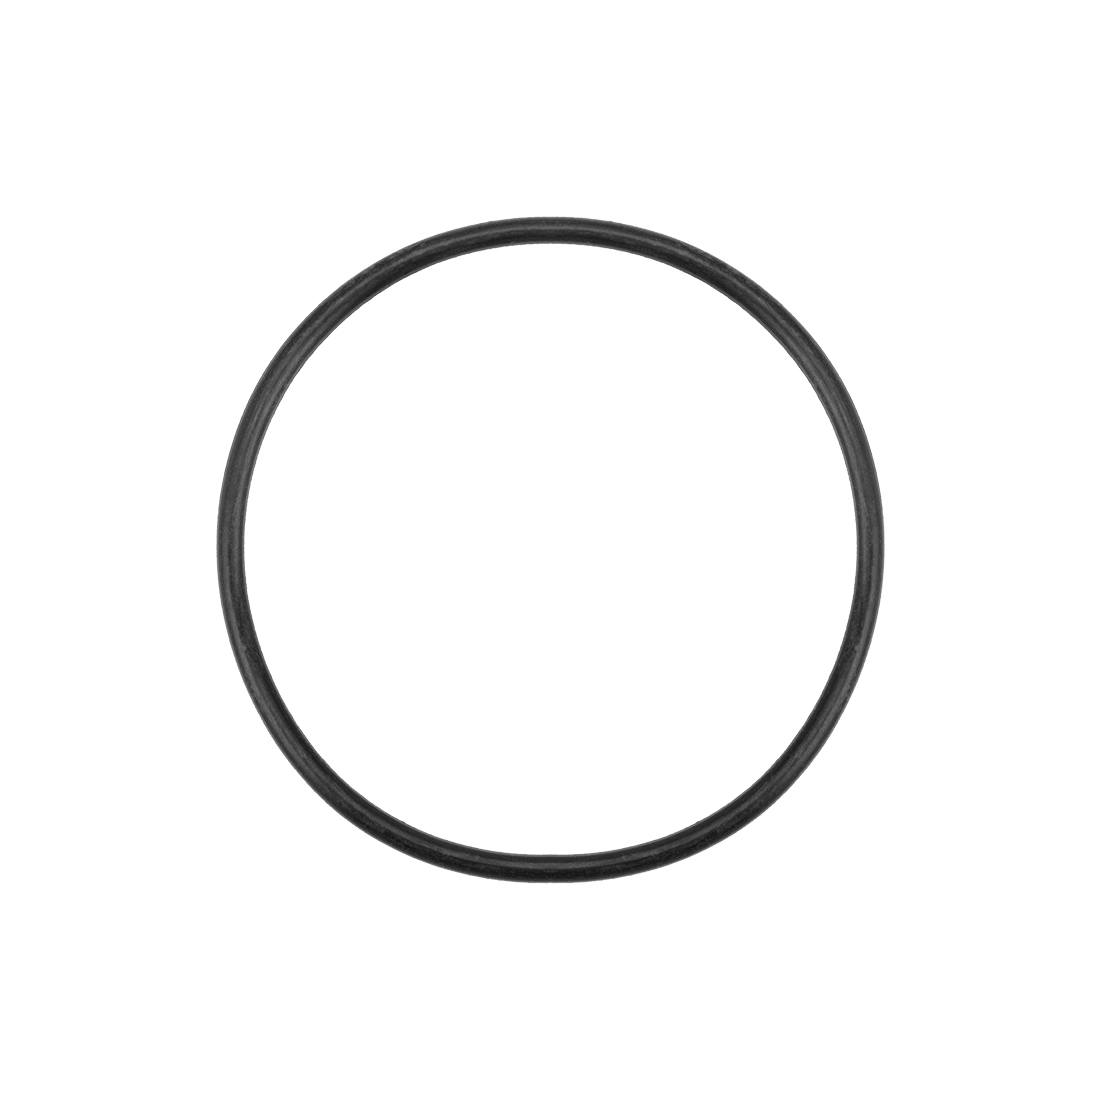 O-Rings Nitrile Rubber 58mm x 63.3mm x 2.65mm Round Seal Gasket